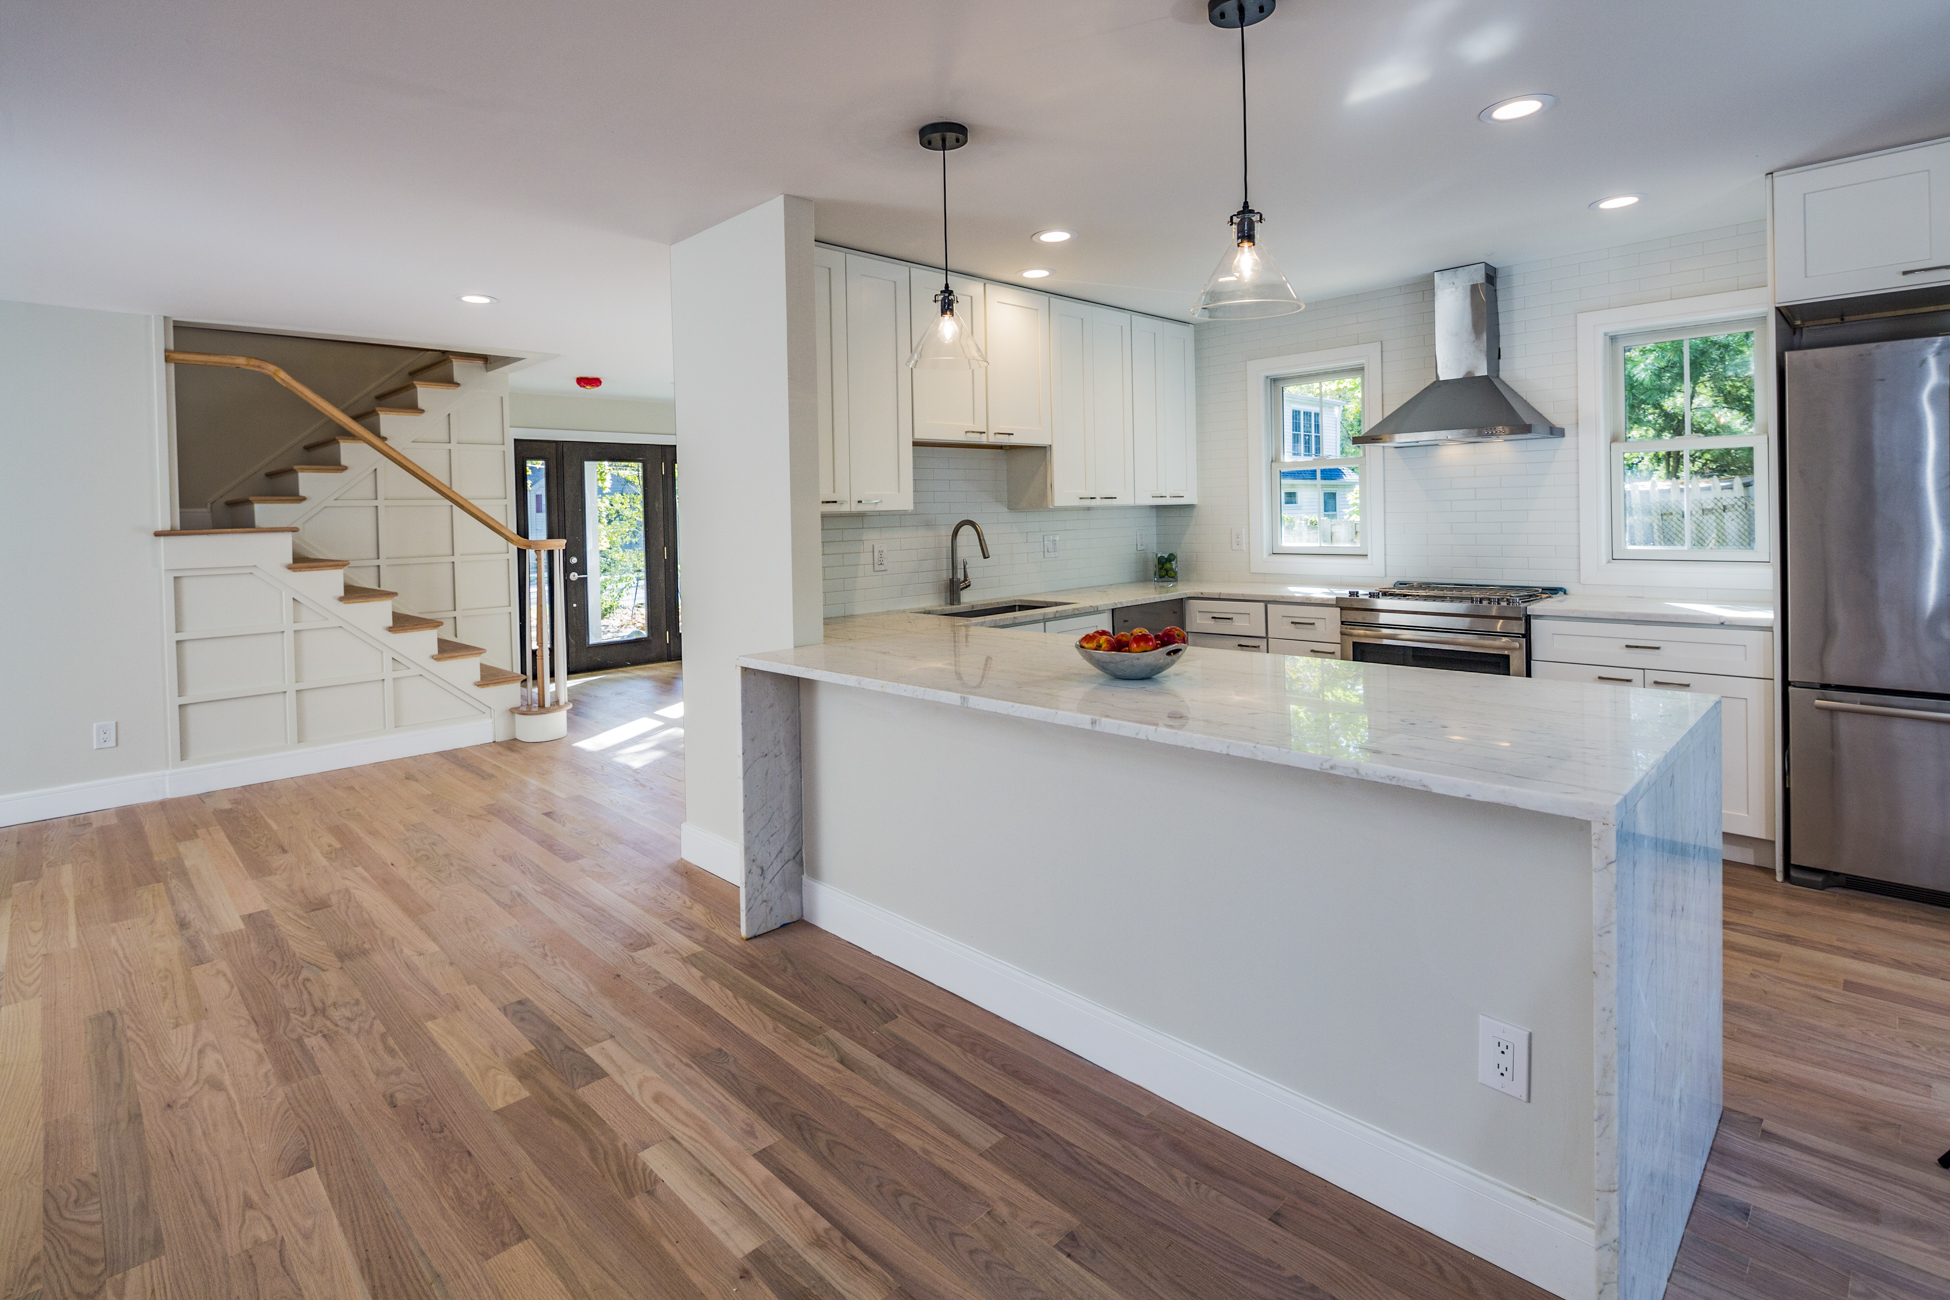 Additional photo for property listing at Beautiful New Construction Close to Downtown 12 Rollingmead Street Princeton, Нью-Джерси 08540 Соединенные Штаты